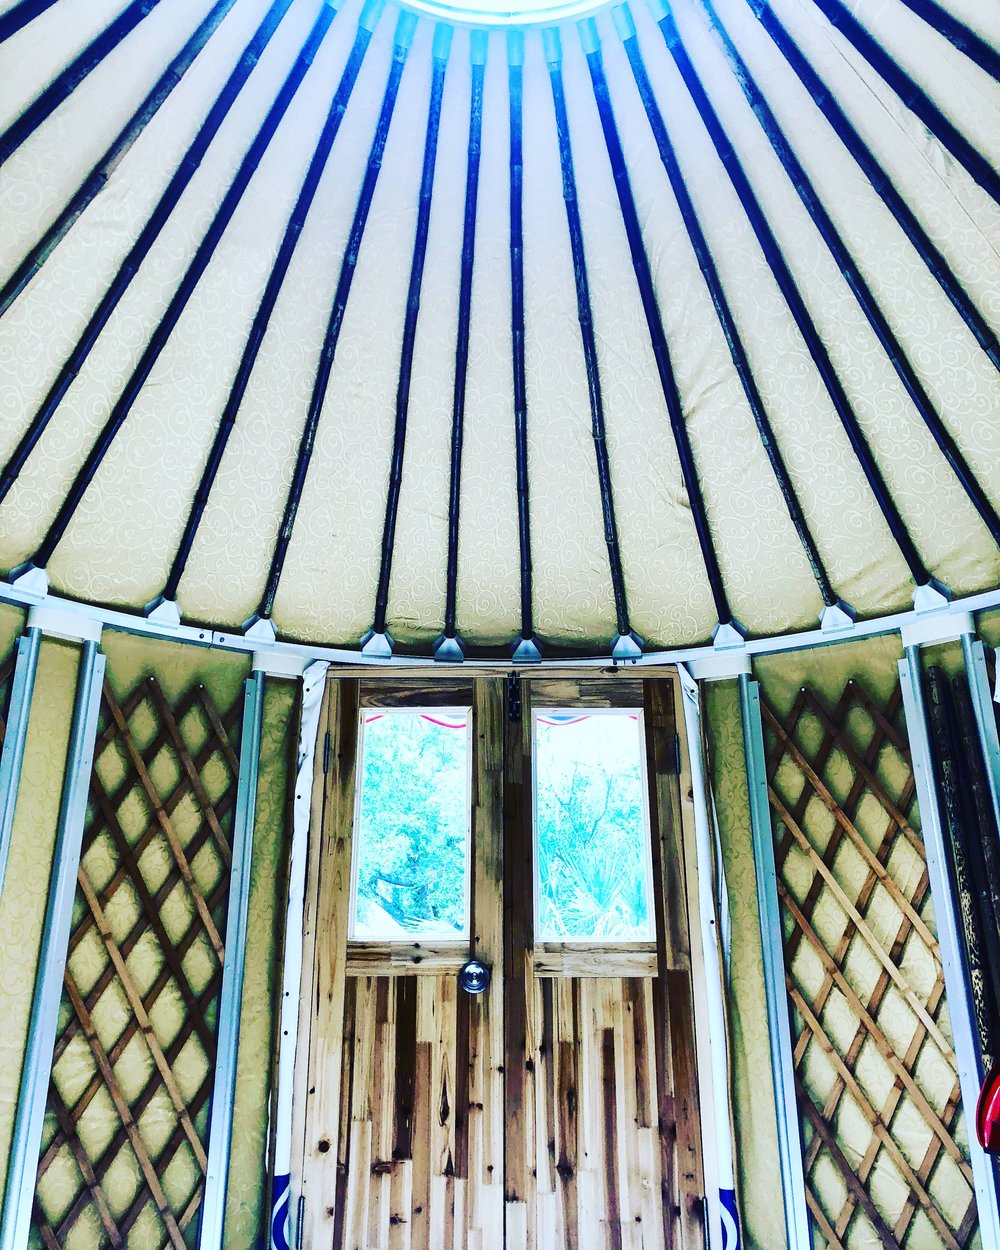 Yurt. Yoga. Relaxation. Meditation. Massage. Stretching. Self-Care, Self-Awareness...